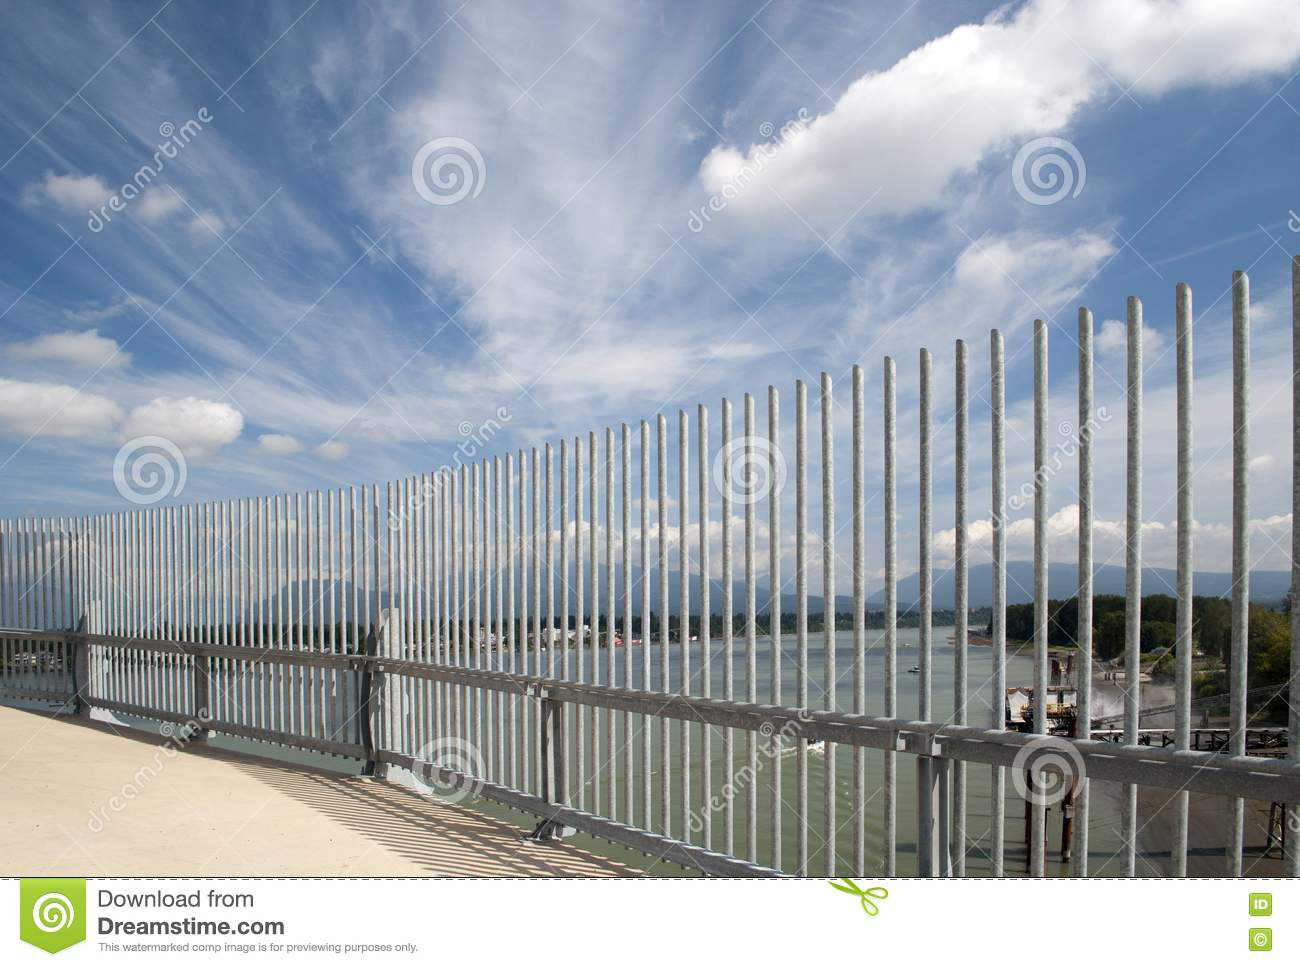 Safety fence stock photos image